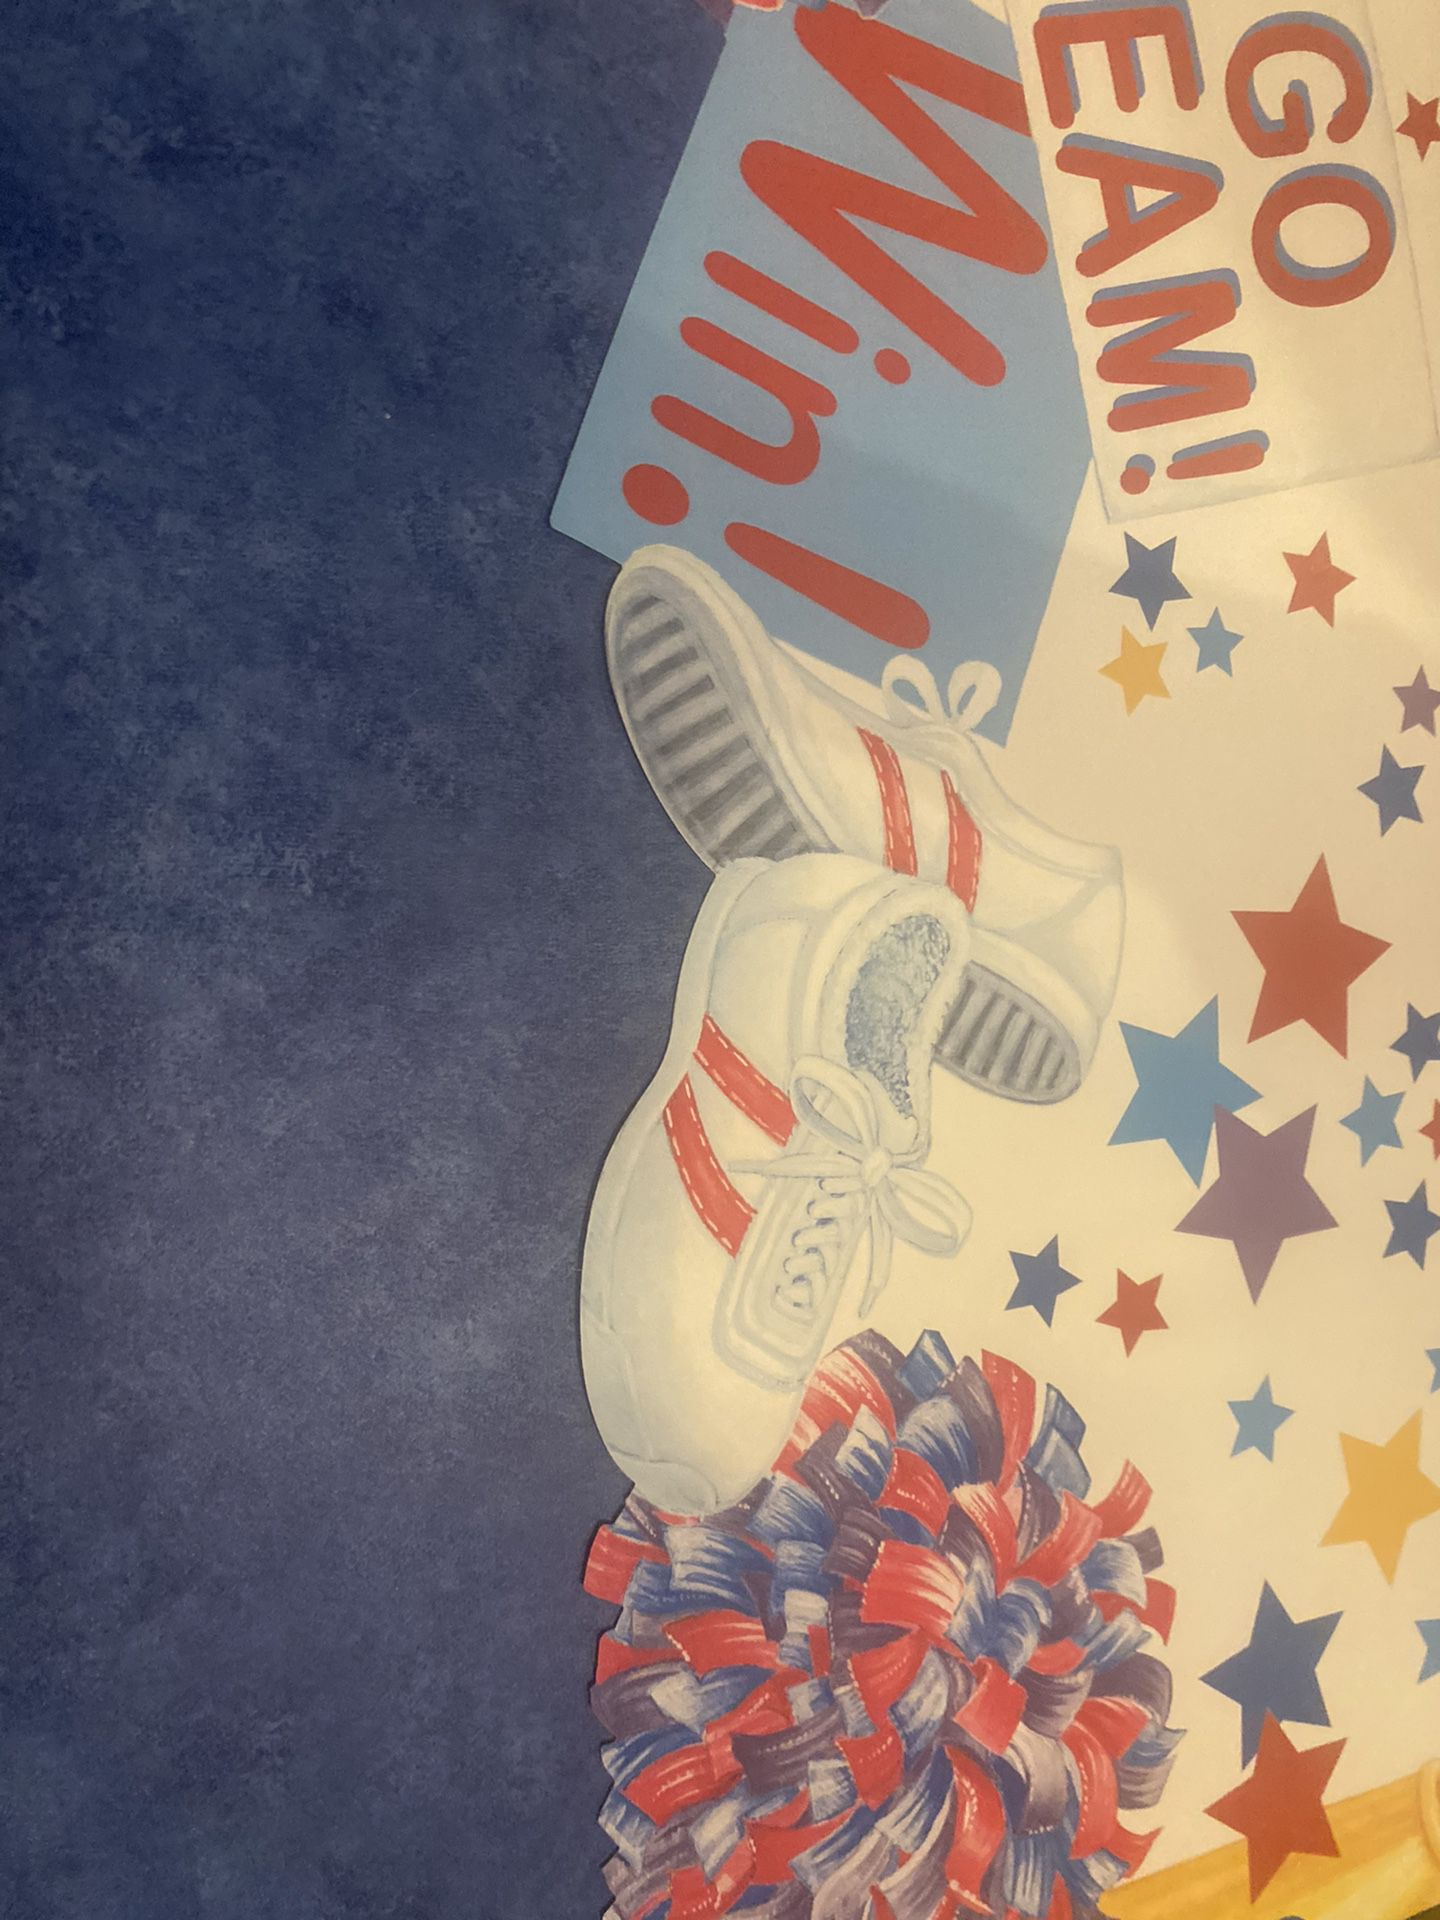 Warner Fun Kids themed Wallpaper Book for Art and Crafts